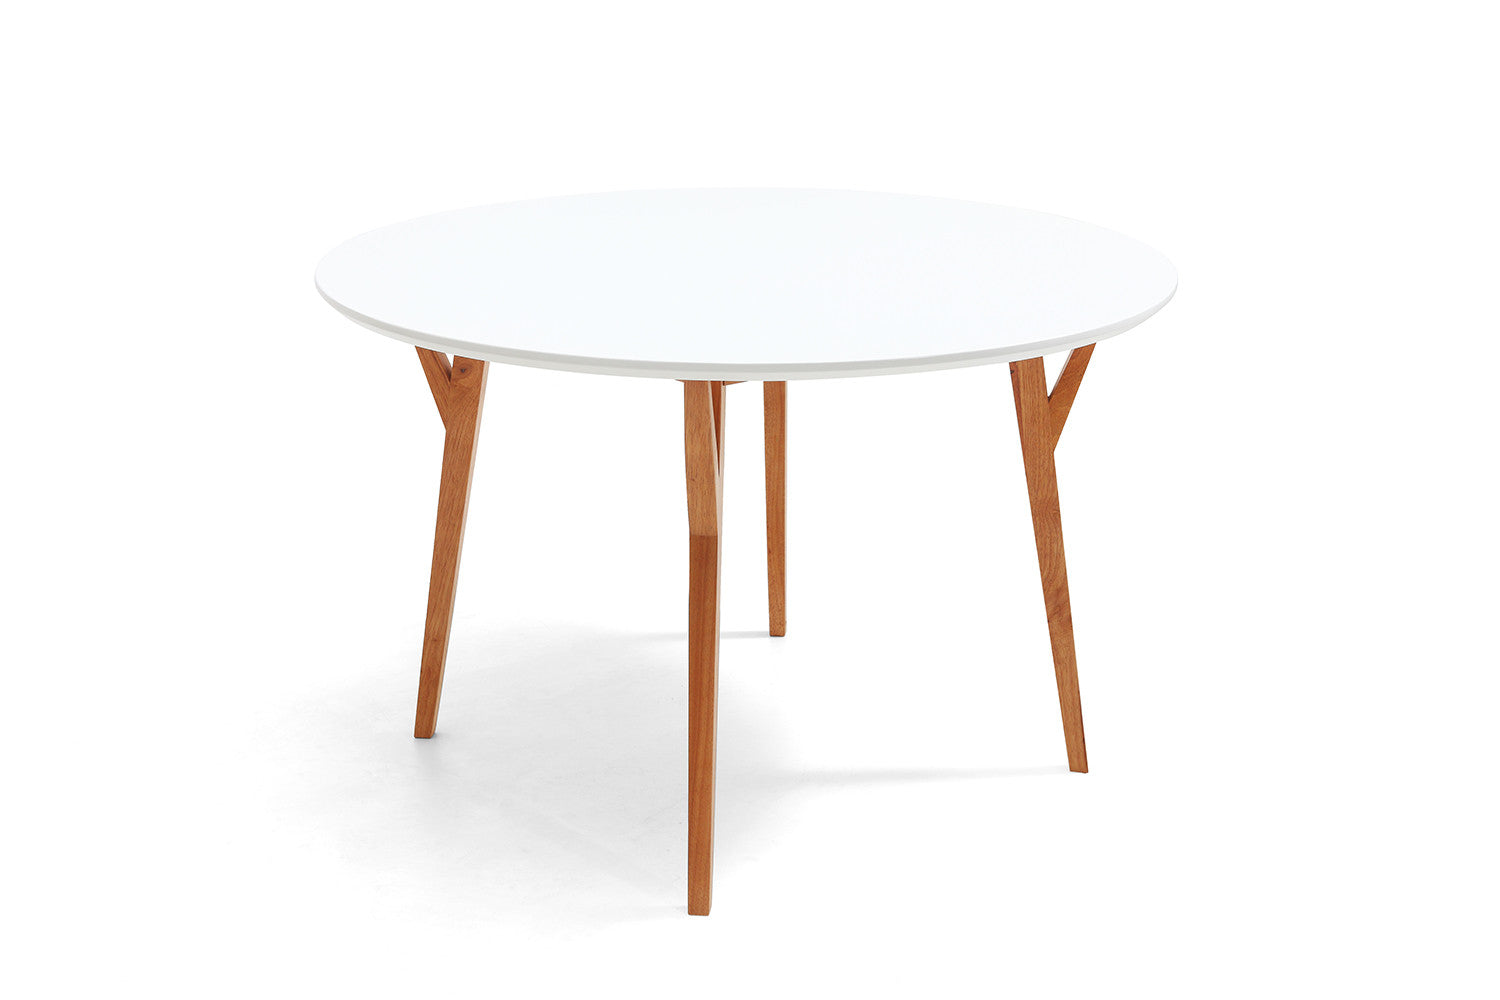 Table de salle manger ronde design scandinave moesa for Table de salle manger ronde